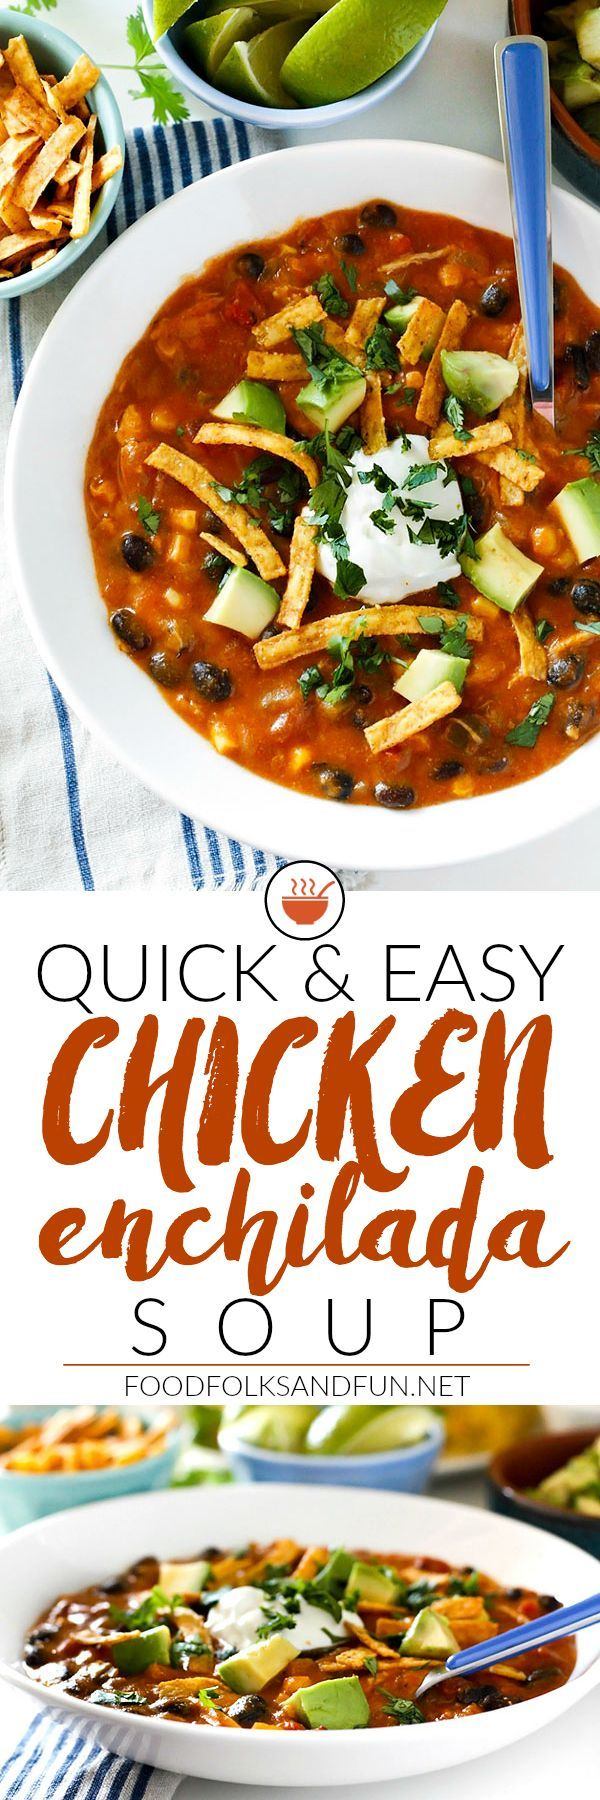 This quick and easy Chicken Enchilada Soup recipe is cheesy, thick, and deliciously loaded with black beans, corn, tomatoes, green chili and cheese! The best part is that it's ready in 30 minute or less! |Easy Dinner | Enchilada Soup Recipe | Quick and Easy recipe | Chicken recipe